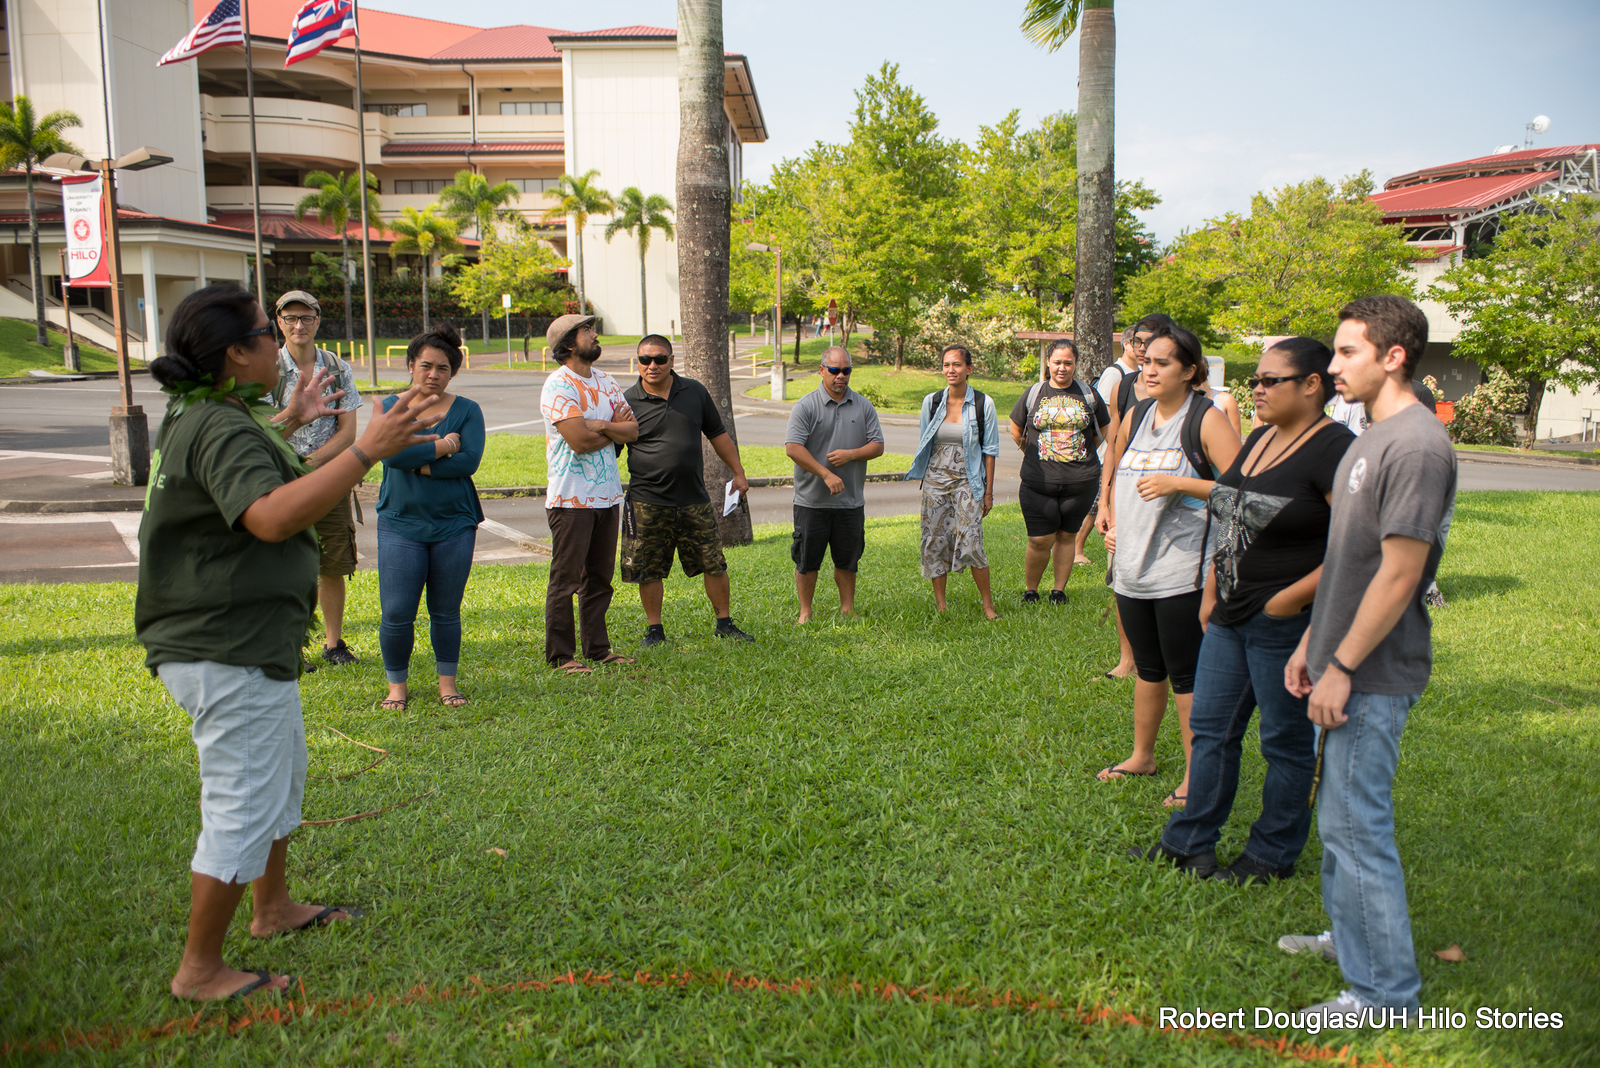 Keala Kahuanui explains rules and protocol of the games to a group of people standing around her. They are standing on a green lawn with the three-story classroom building in the background.